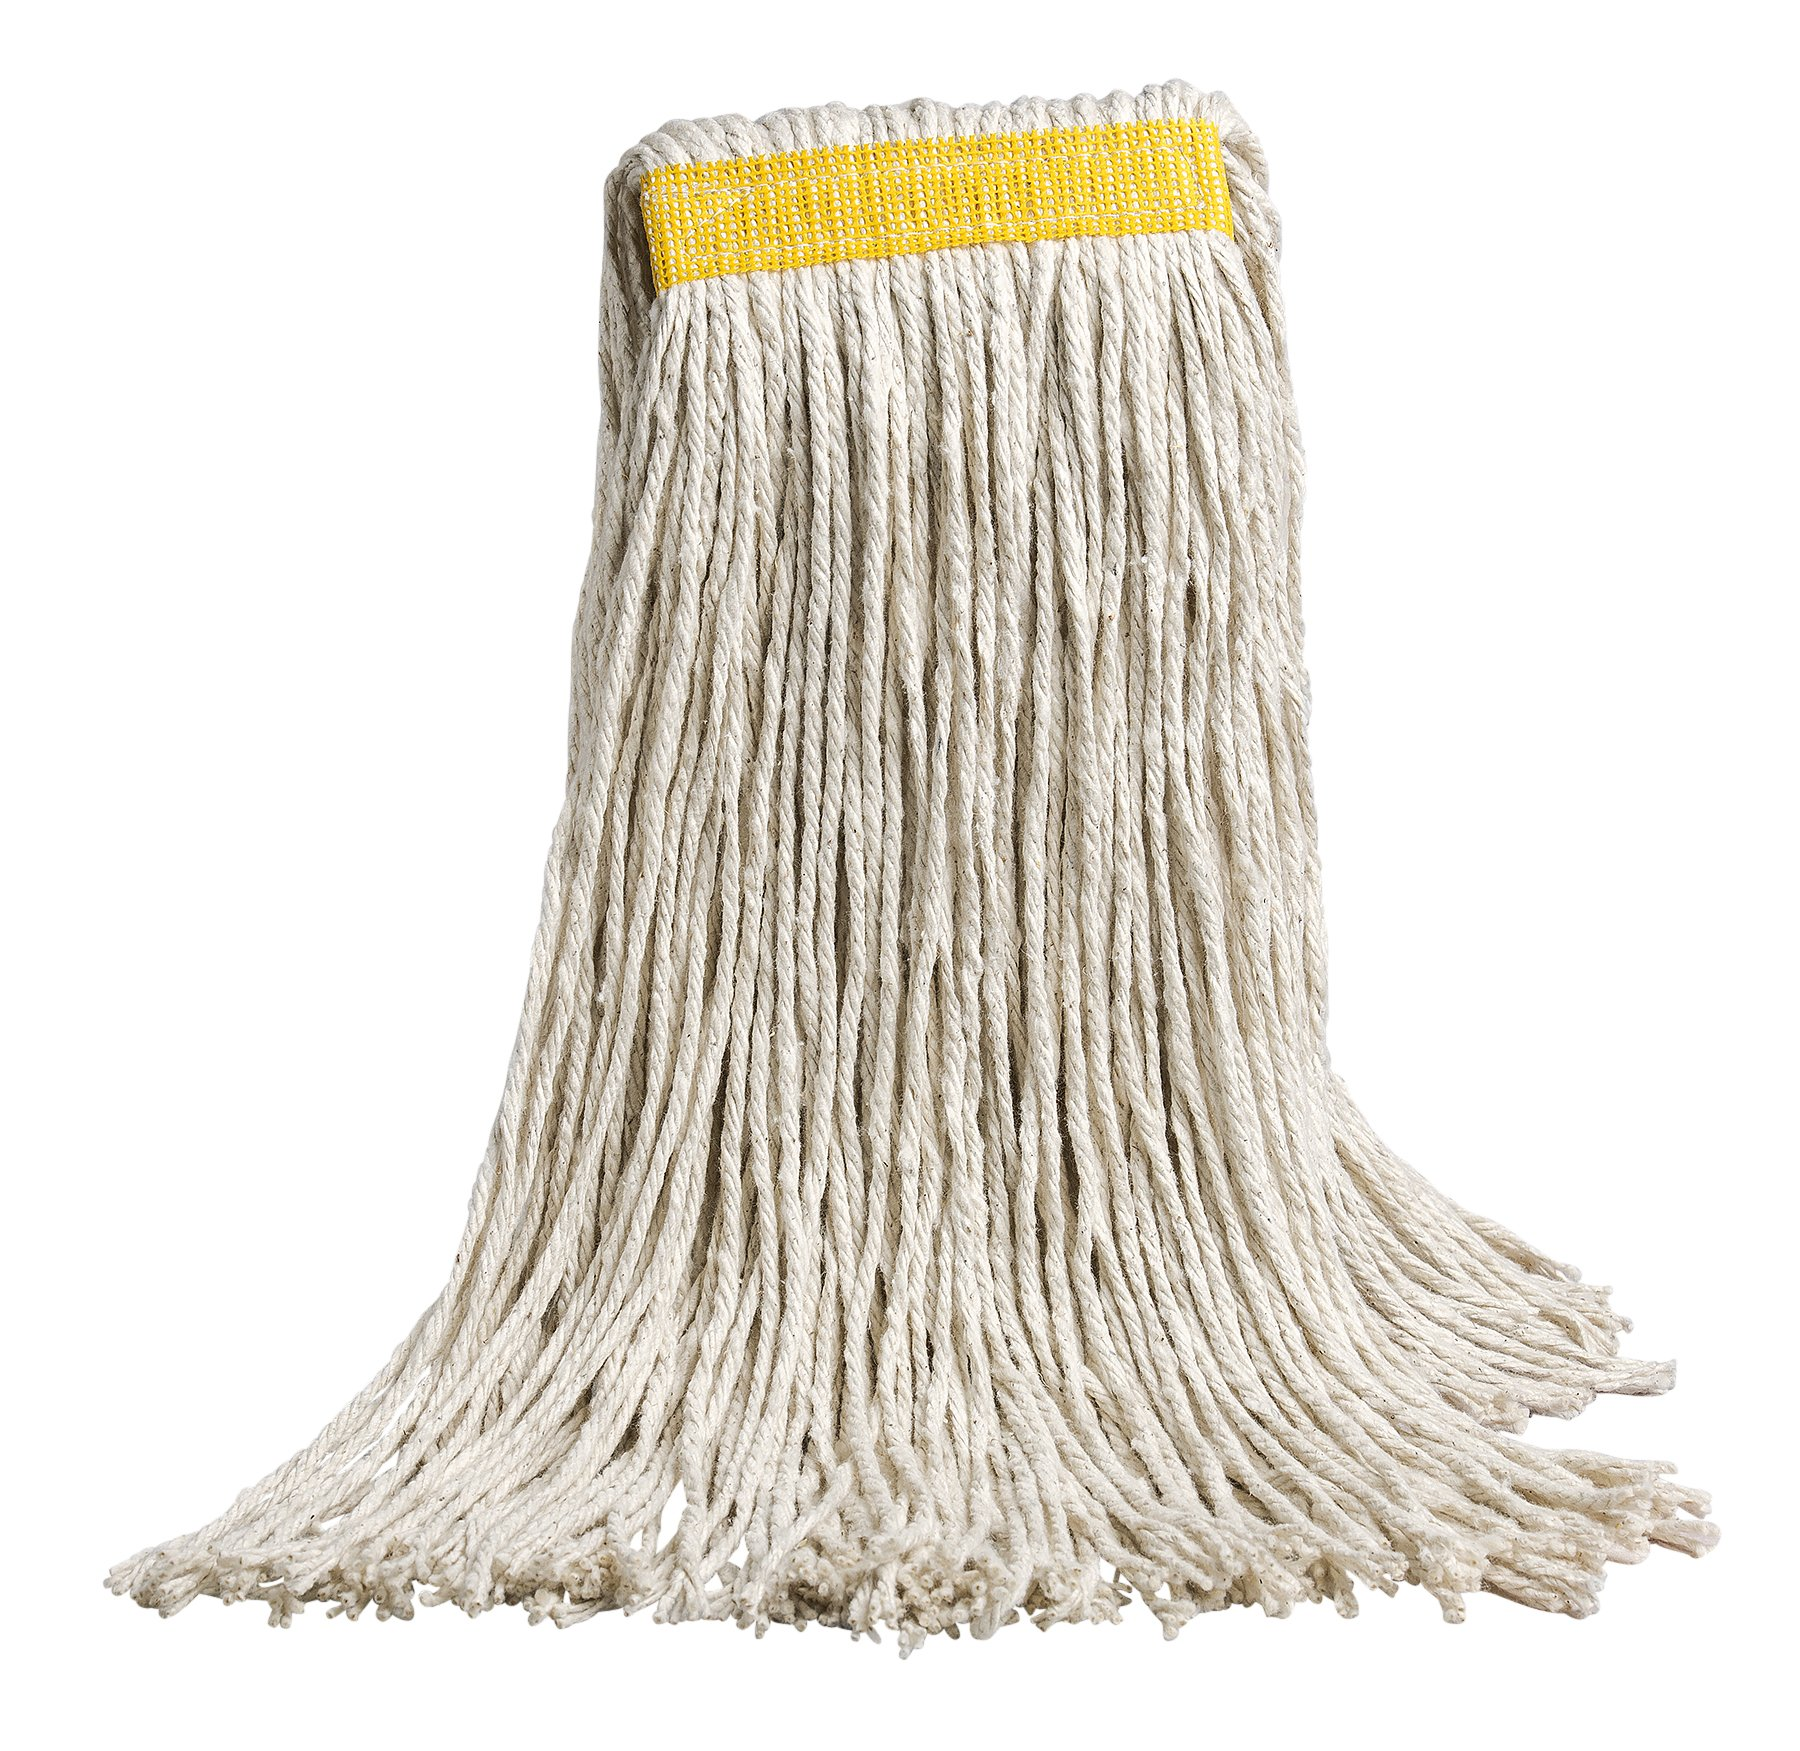 M2 Professional Cotton 24oz Cut-End Mop Replacement Head, 1.5'' Headband - Case of 12 - For Industrial, Commercial & Home use, Hardwood, Tile, Ceramic, Concrete. Etc.